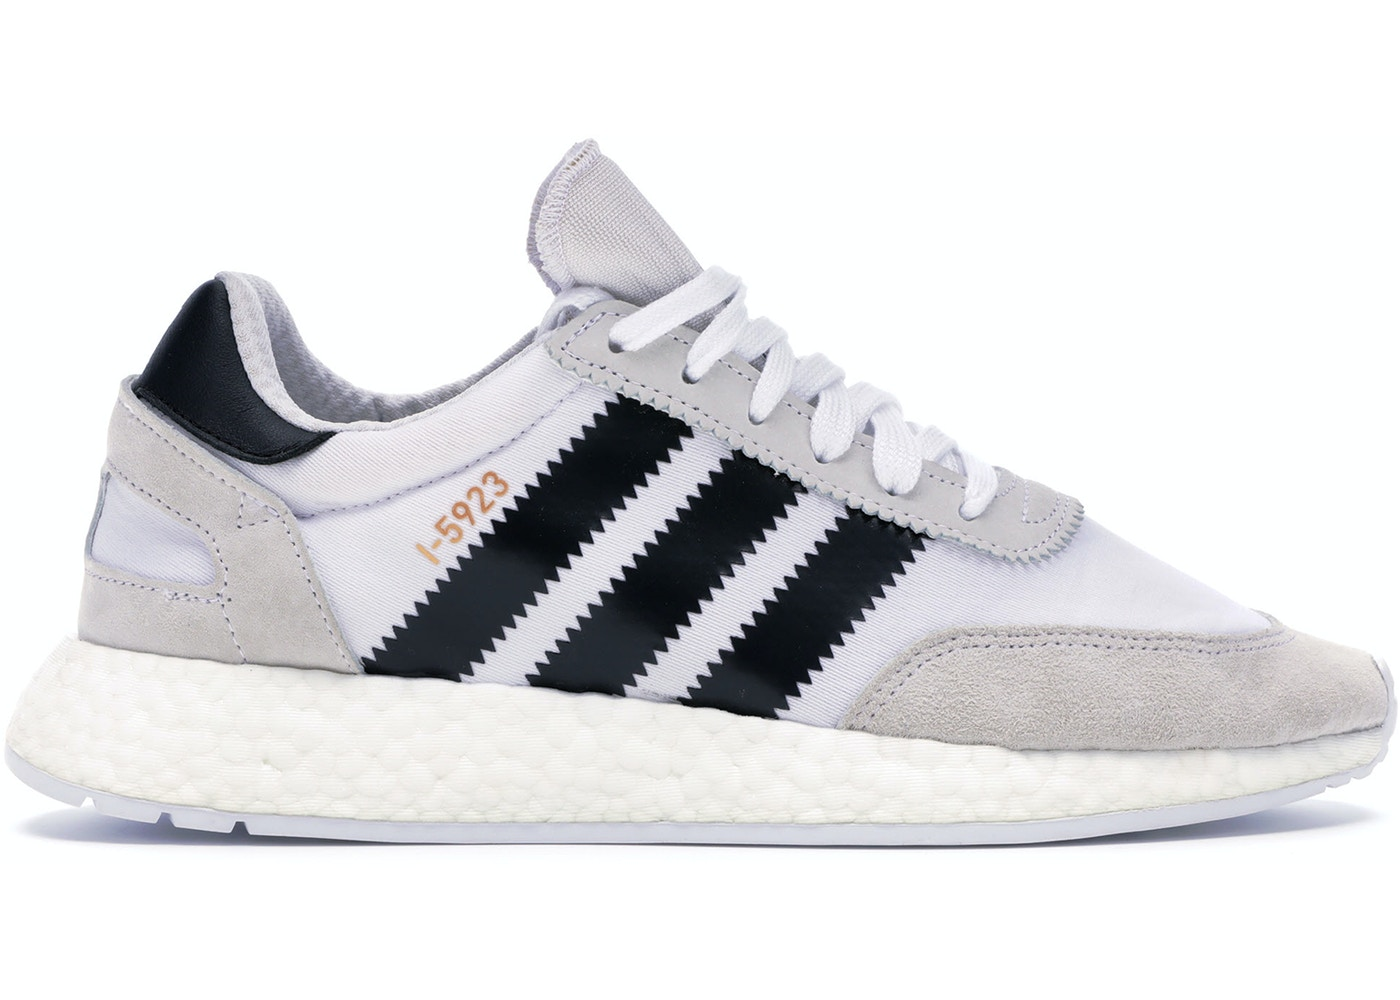 Impedir Puerto marítimo Sandalias  Buy adidas Iniki Shoes & Deadstock Sneakers